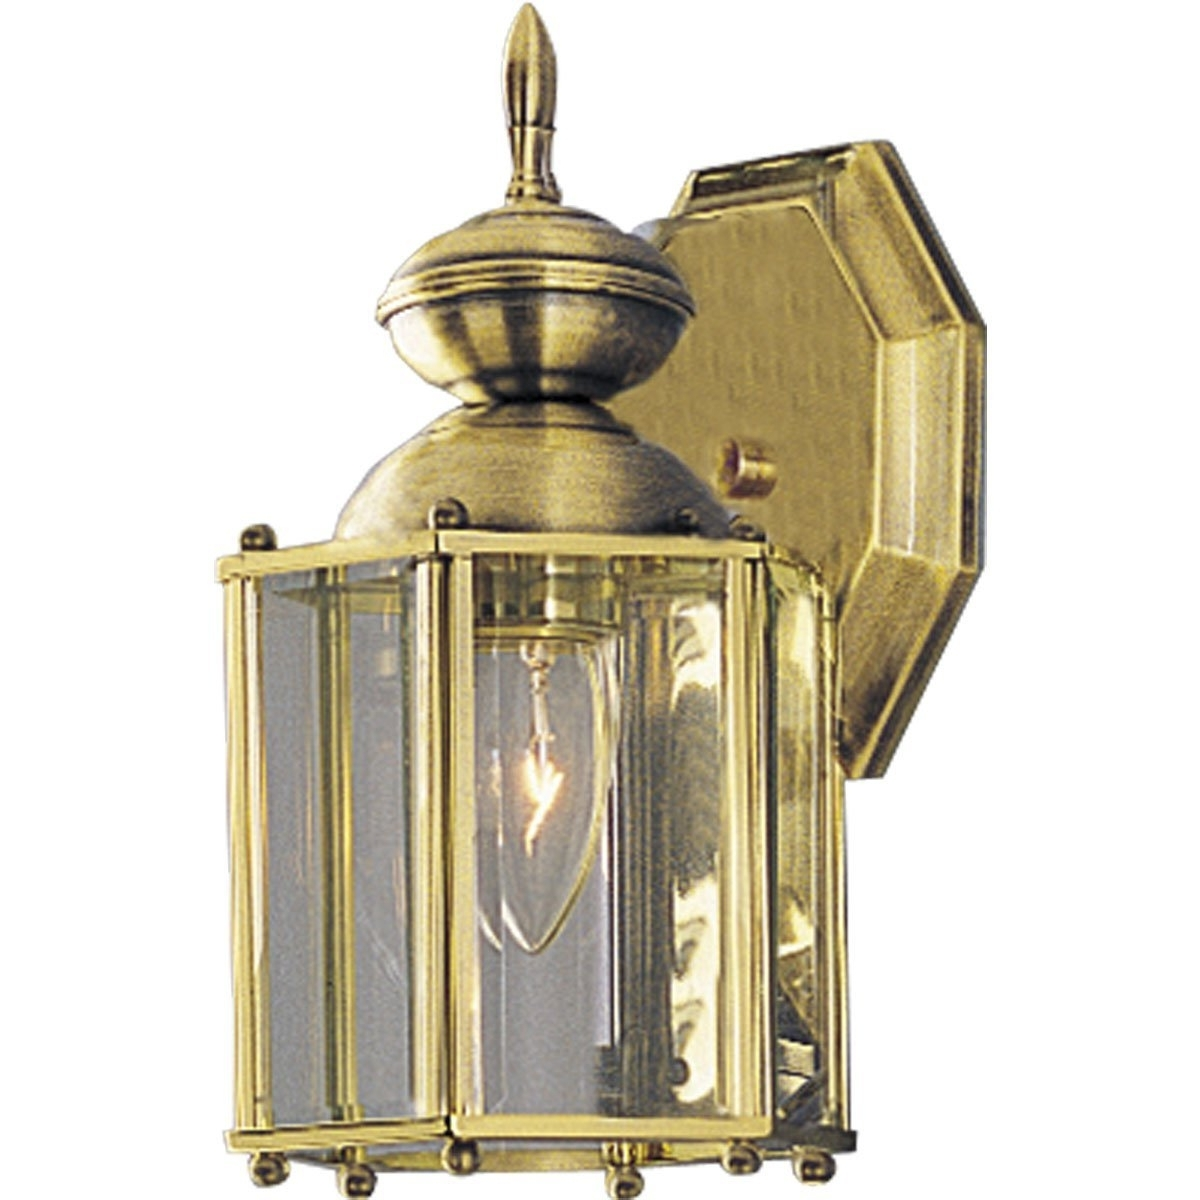 2019 Brass Outdoor Lanterns Intended For Solid Brass Outdoor Wall Lighting Step Lights Low Voltage Uk Glass (Gallery 17 of 20)